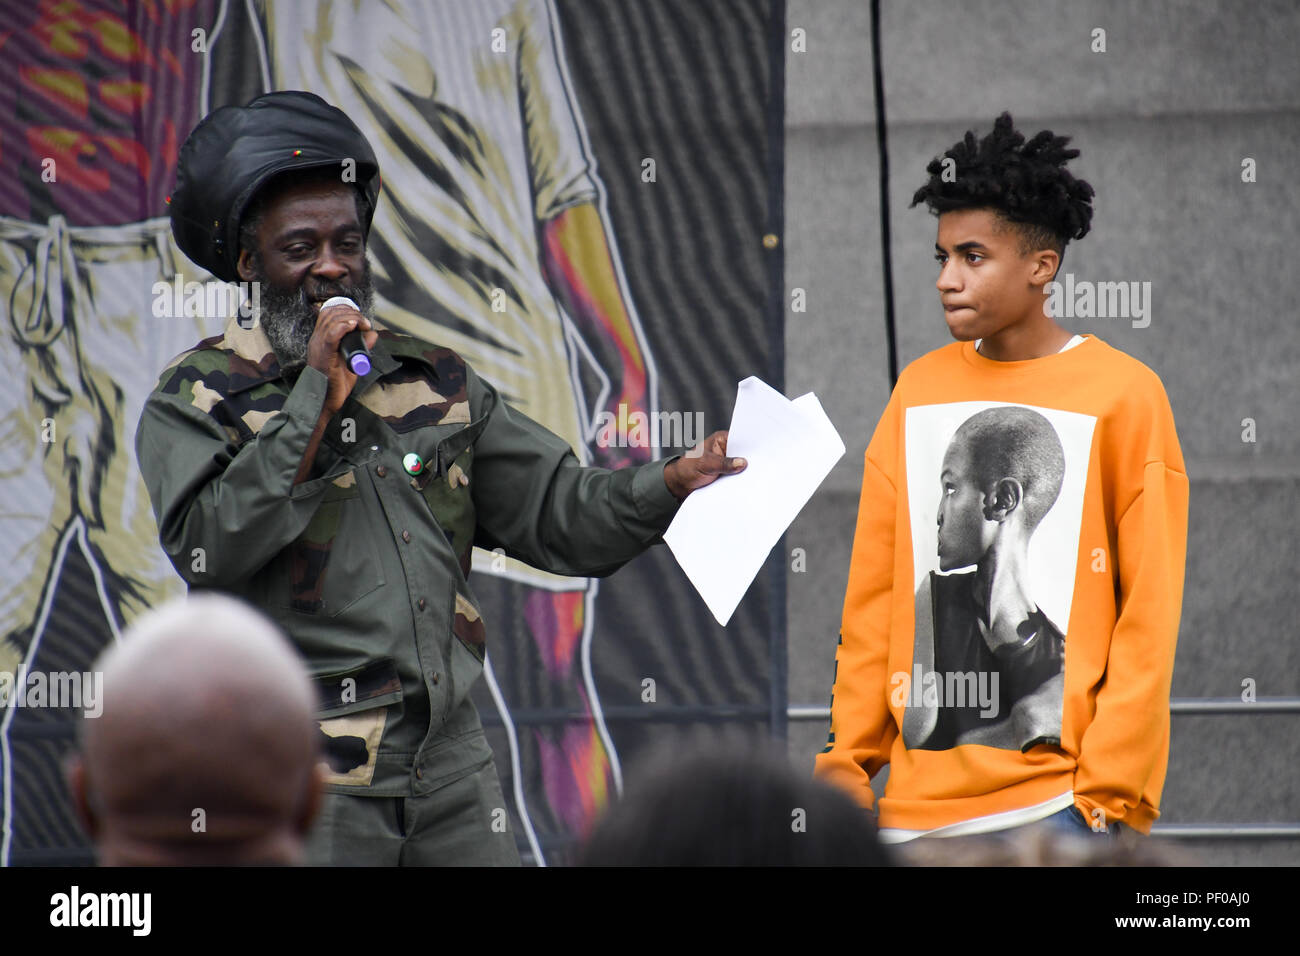 Trafalgar Square, London, England, UK. 18th August 2018. Hundreds of Africans descendant attend the African Holocaust National Memorial - #TimeToRemember2018 My Tribe organizes for the victims of the Transatlantic Slave Trade/African Holocaust. The wound hasn't healed, the nightmare arises repeated of the imperialism and fascist rising in racist attacks in the UK and globally. Credit: Picture Capital/Alamy Live News - Stock Image